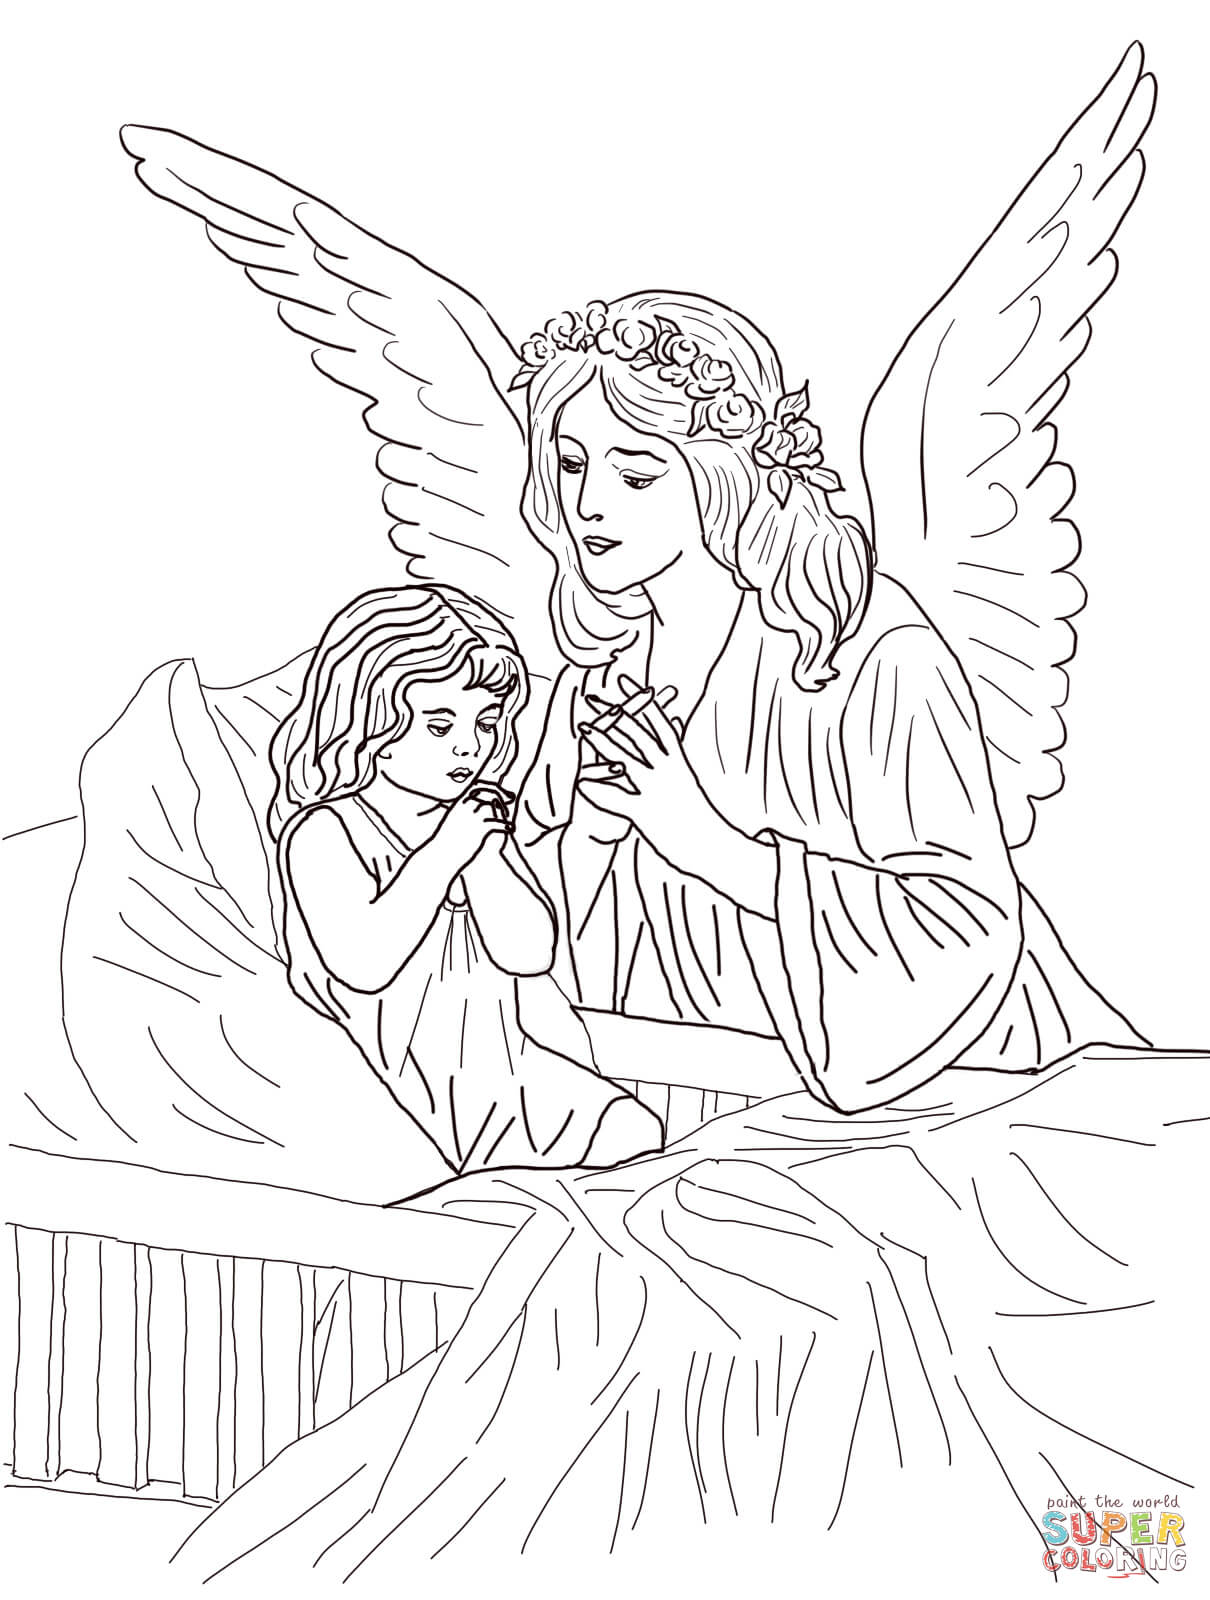 Coloring Pages Free Angel Coloring Pages free angel coloring pages for adults az precious moments angels more printable